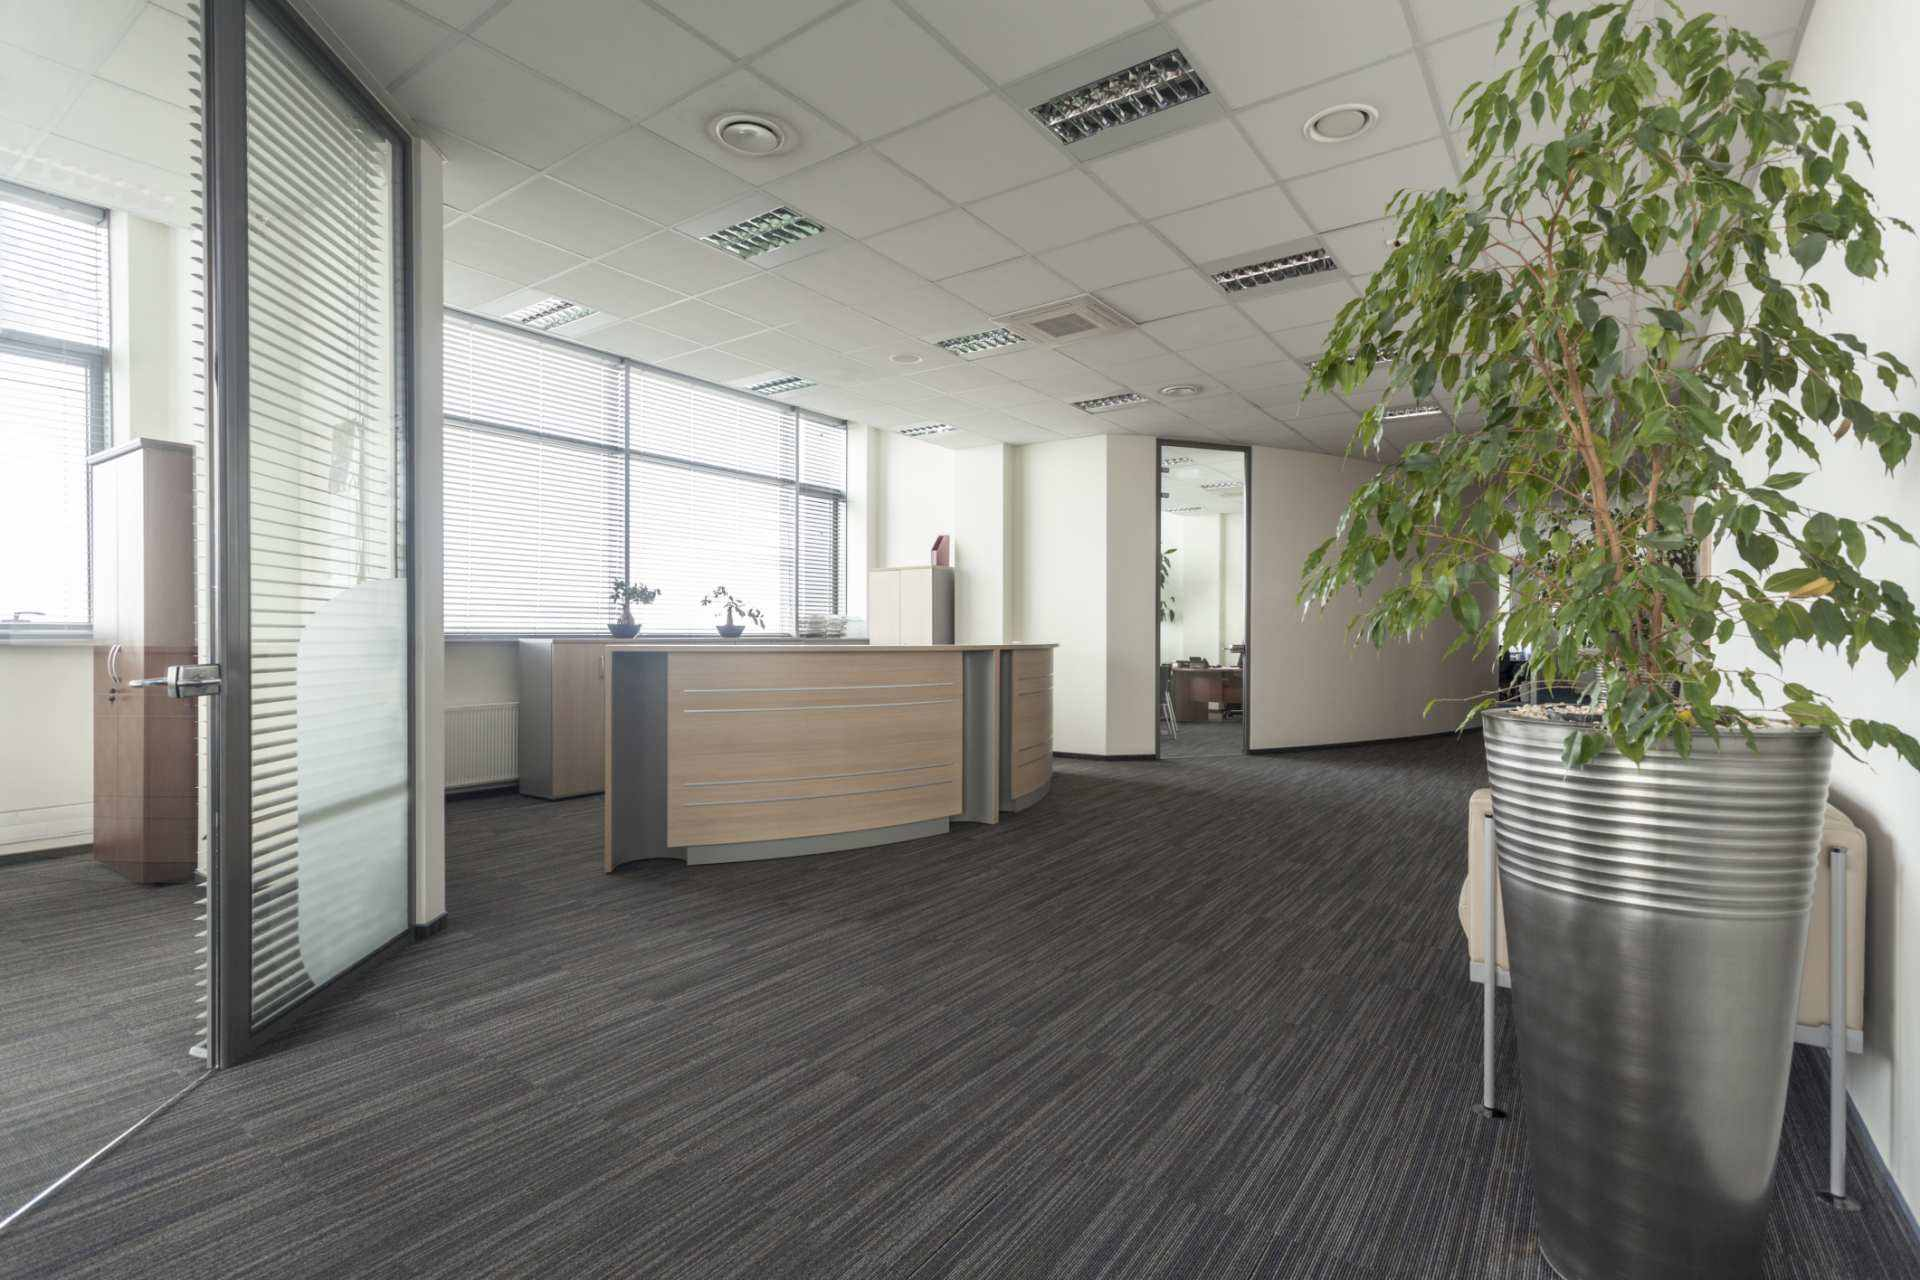 interior architecture and design bournemouth office leasing build to suit office space gainesville